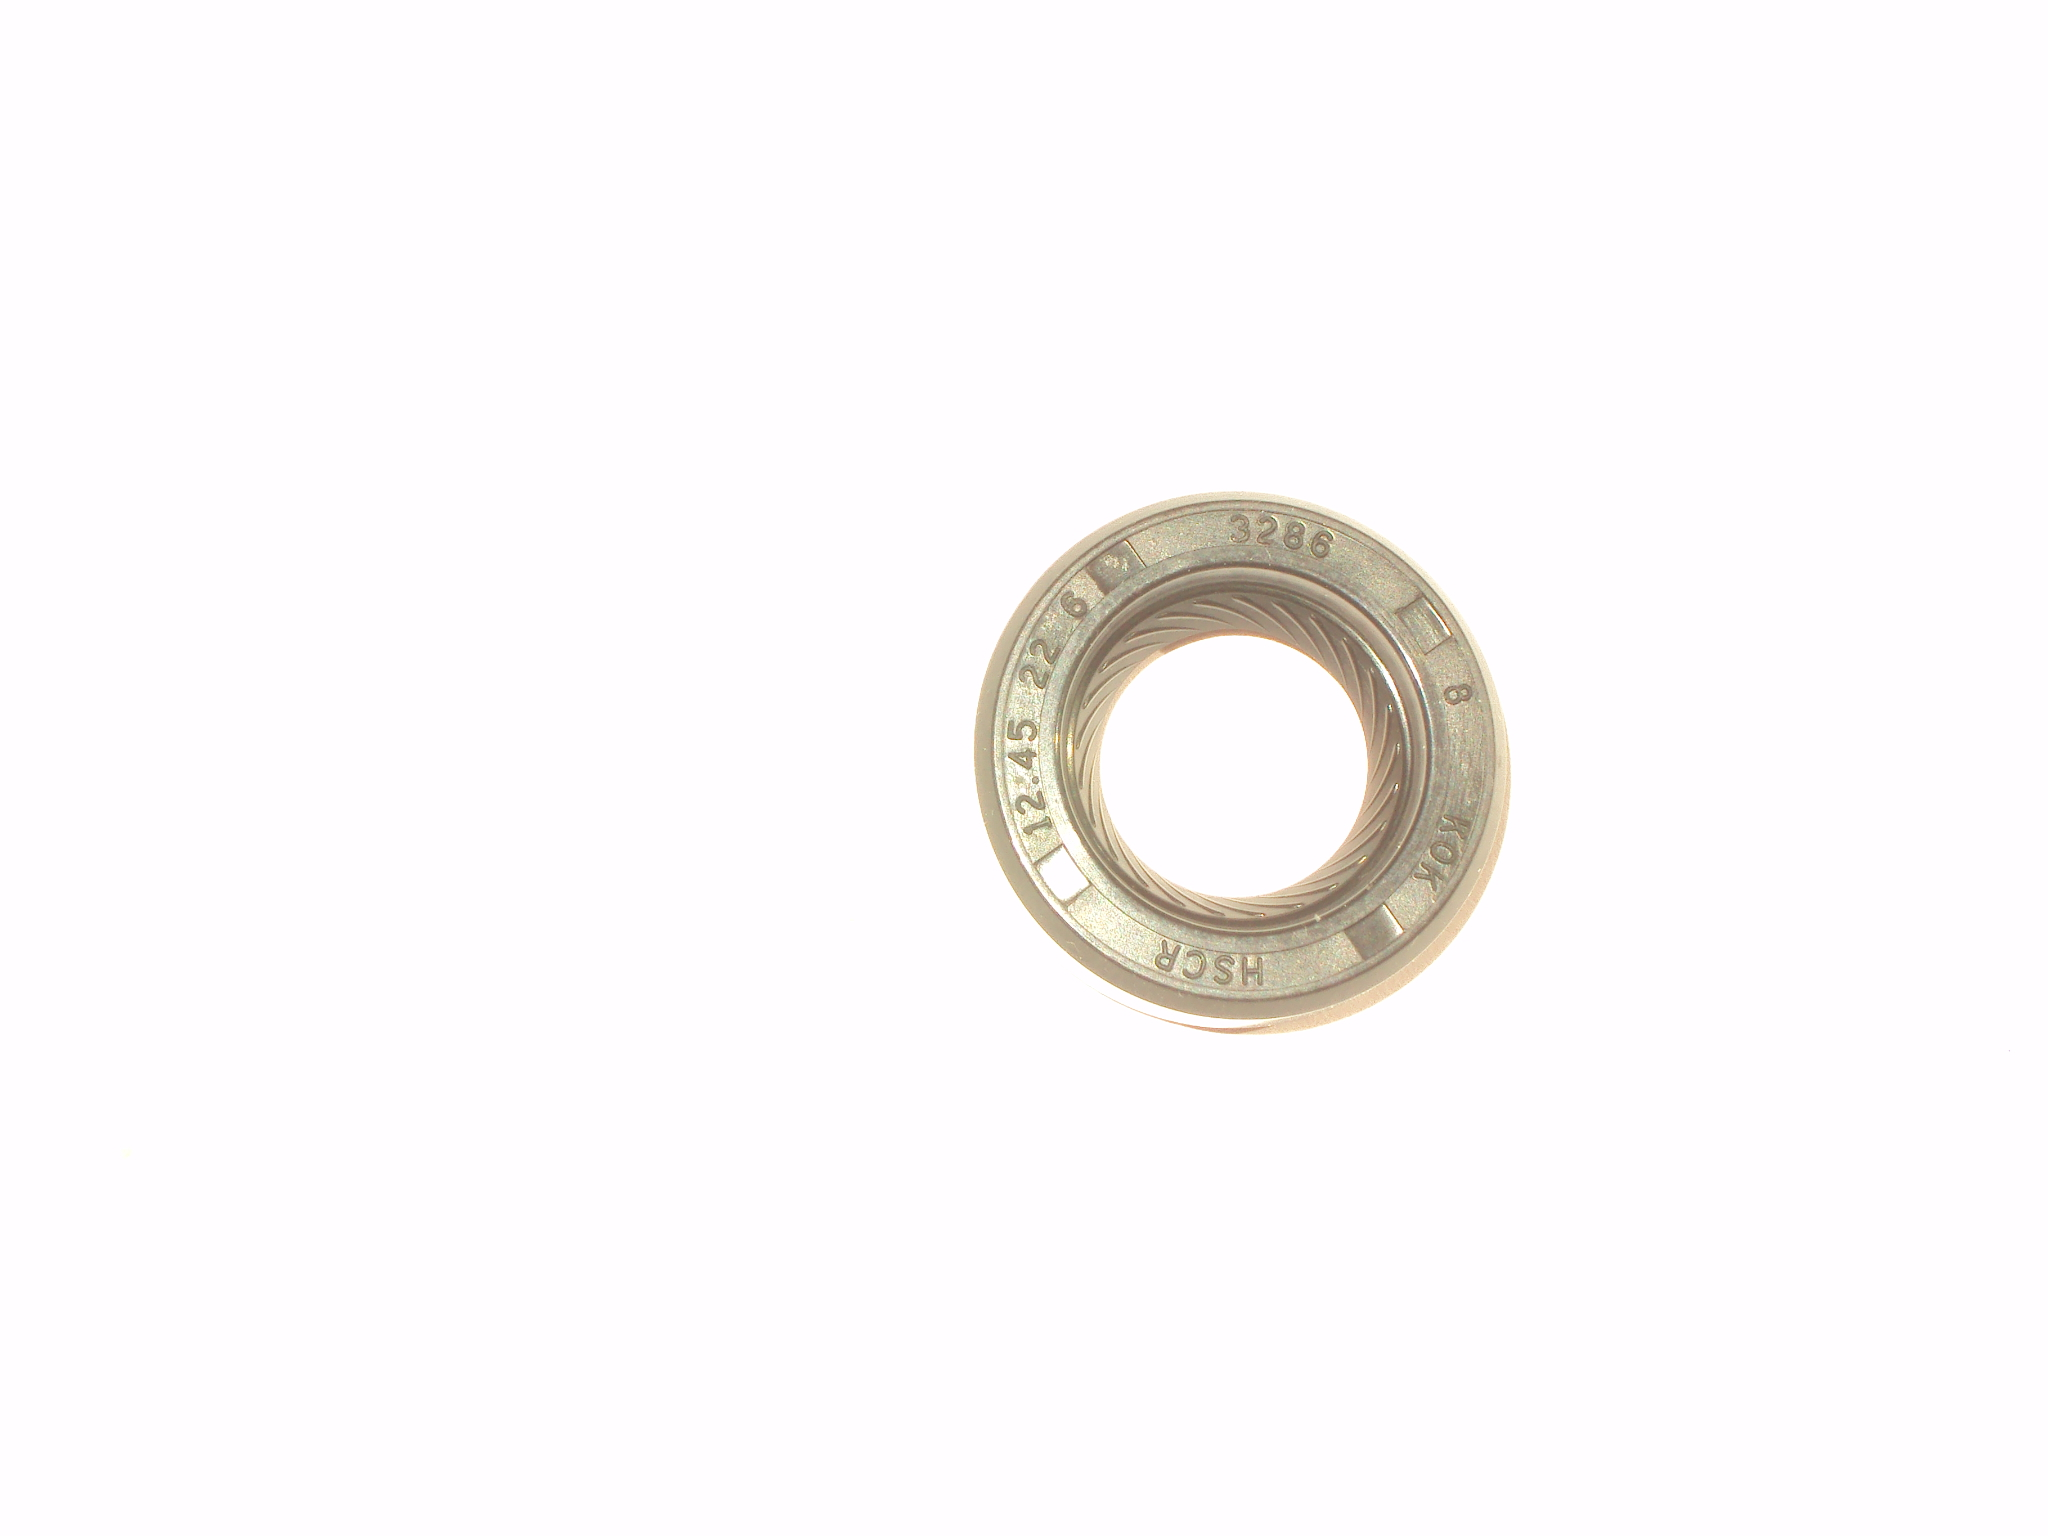 honda distributor shaft seal for F22B1, F23A1, and F23A4.